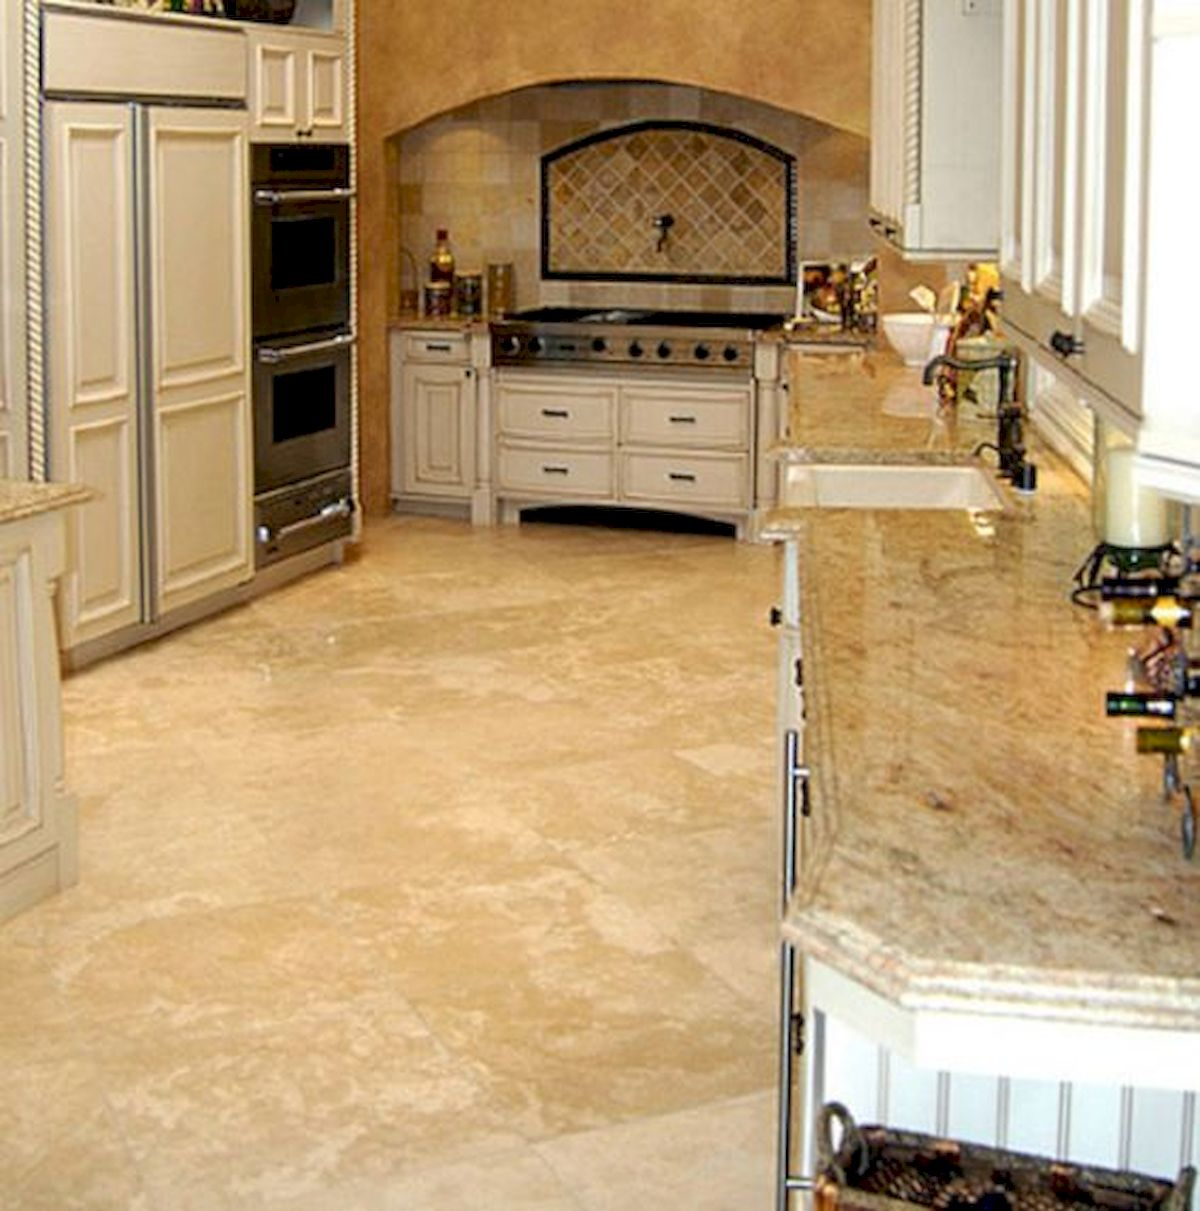 30 Best Kitchen Floor Tile Design Ideas With Concrete Floor Ideas (28)